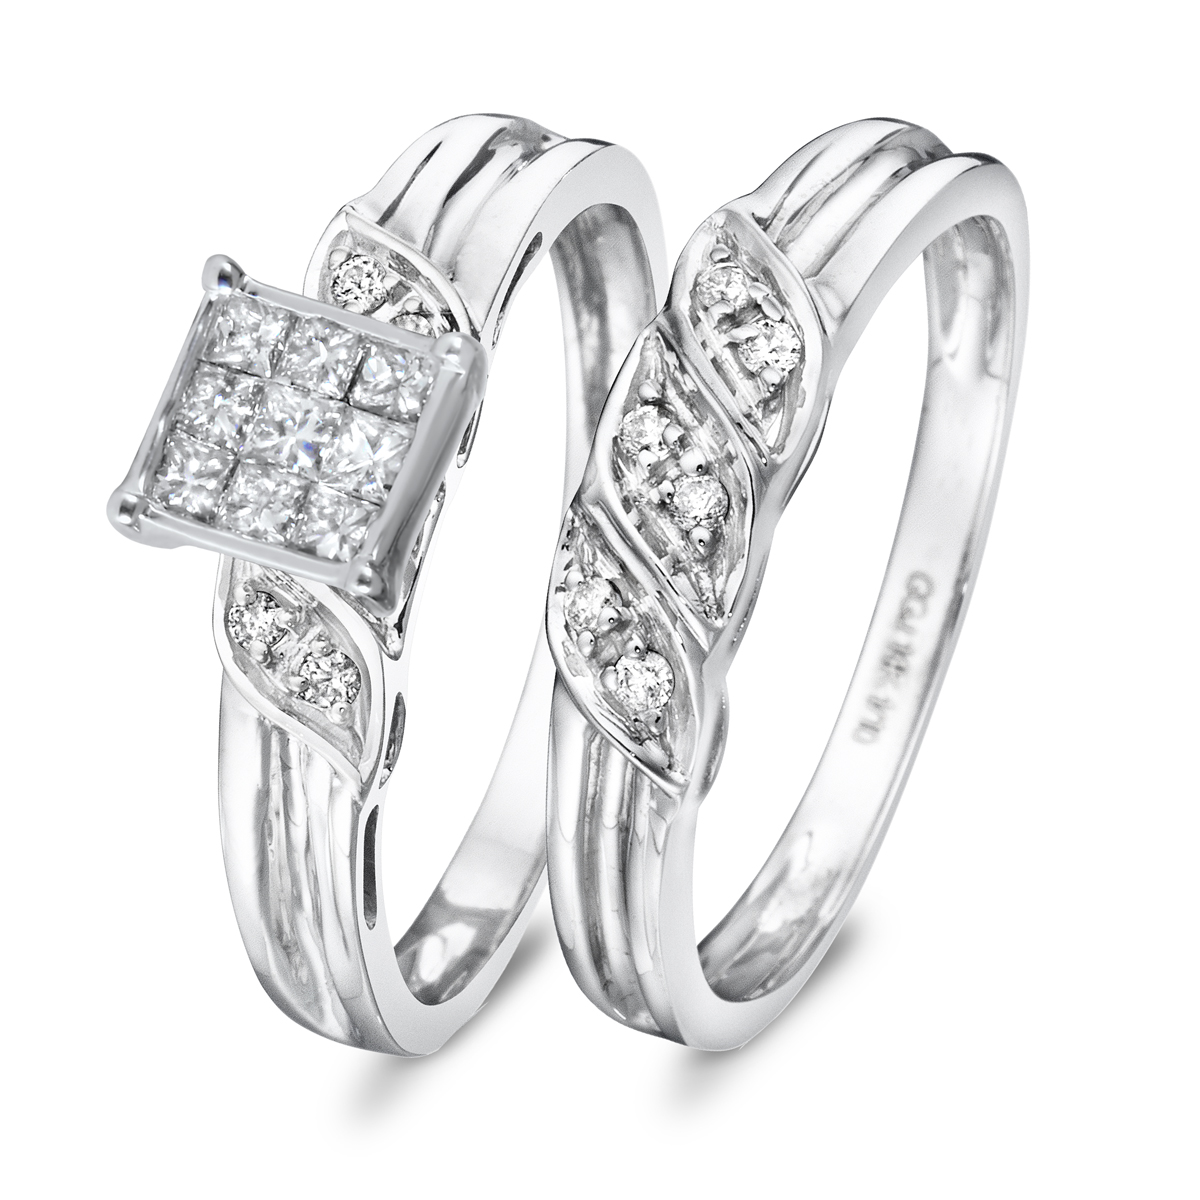 3/8 CT. T.W. Diamond Women's Bridal Wedding Ring Set 10K White Gold